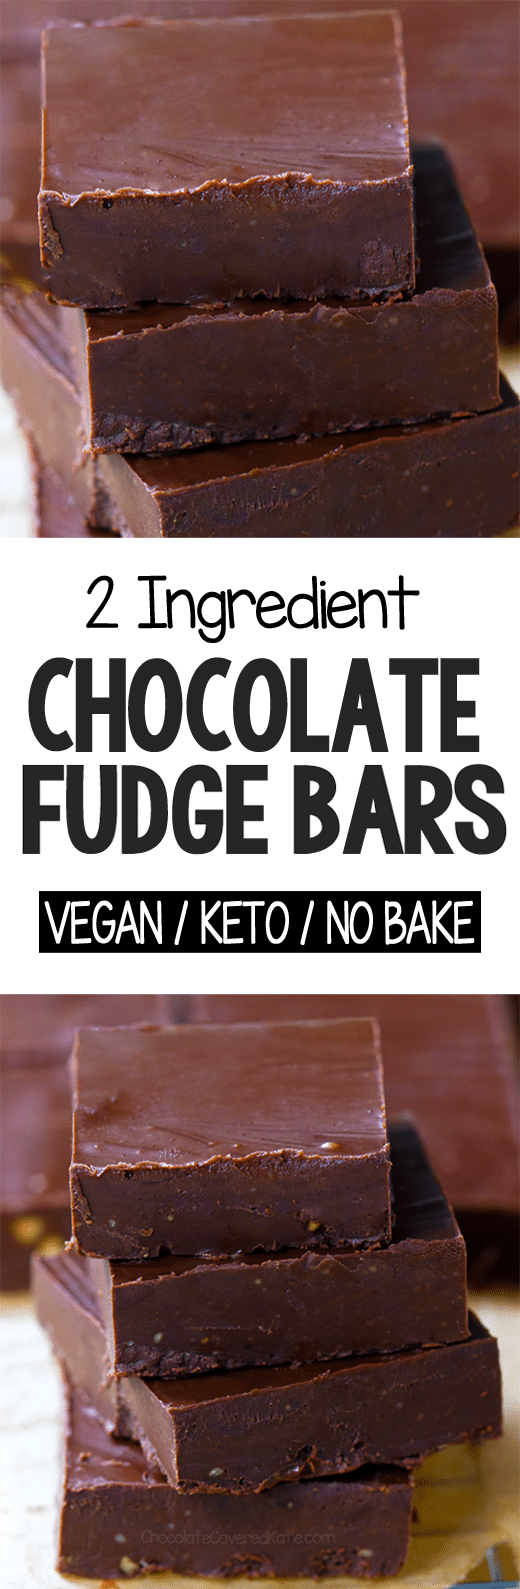 Easy No-Bake Chocolate Fudge Bar Recipe